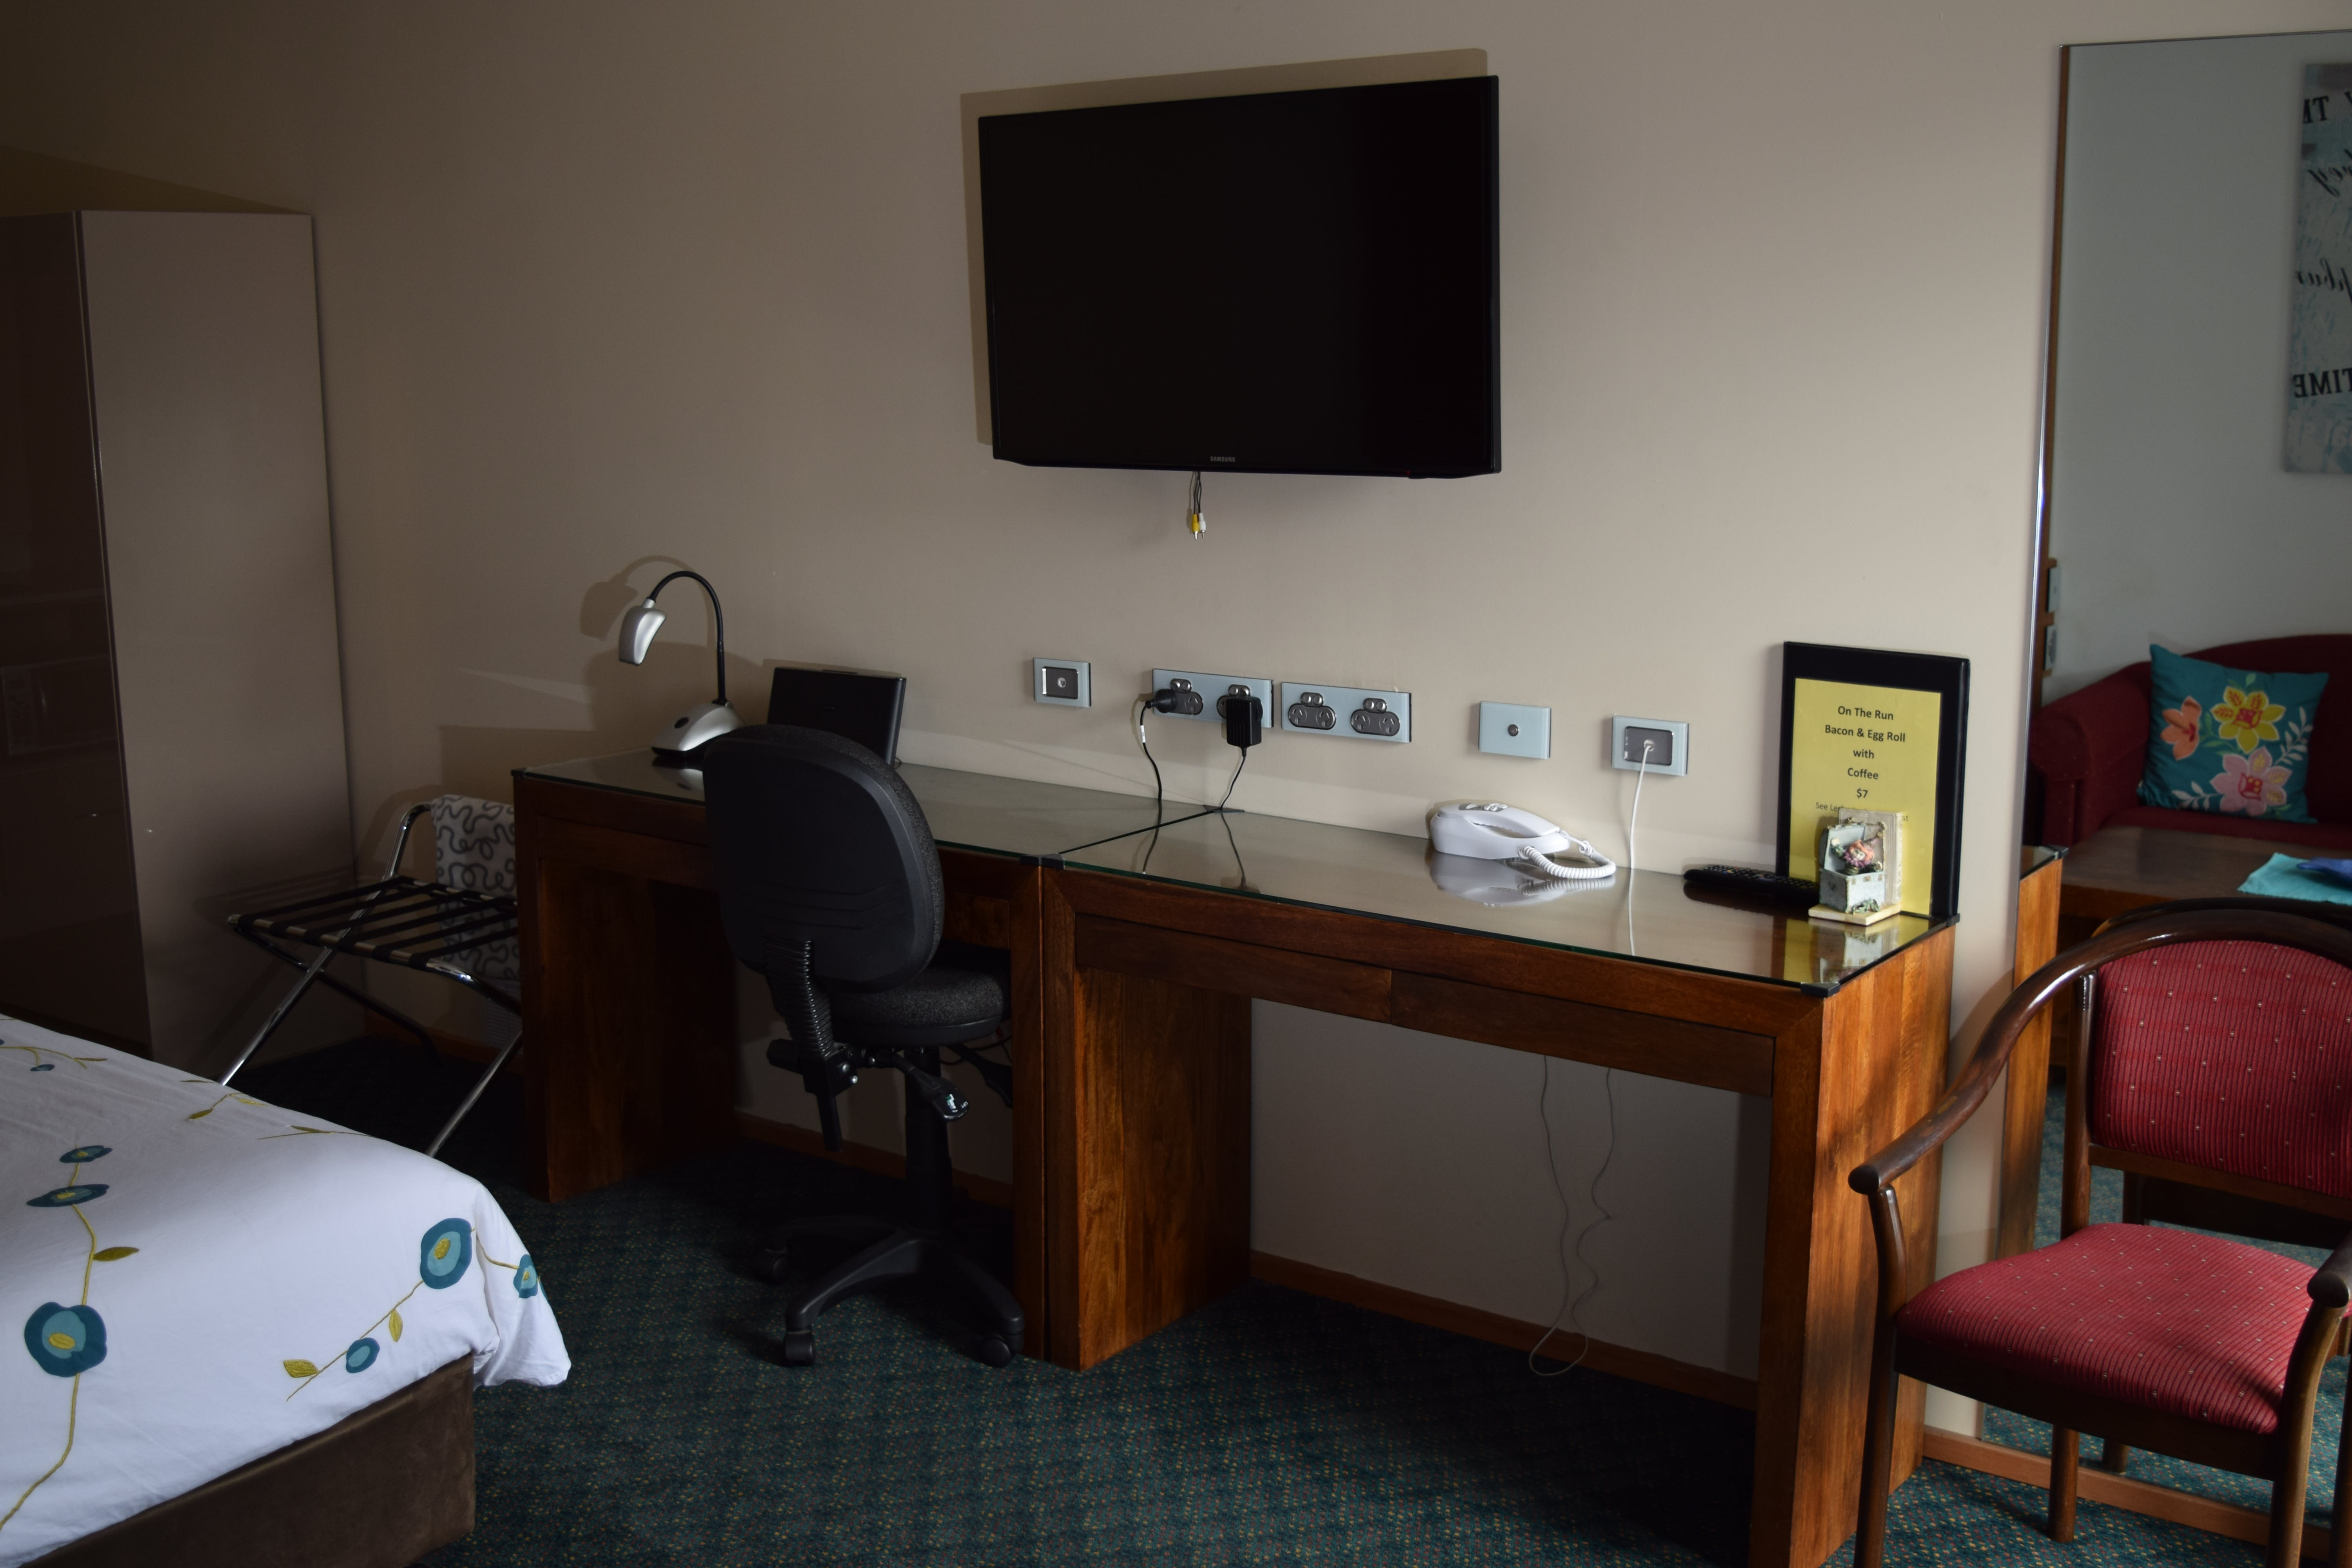 Executive Queen rooms have sofas or single beds (twins). All rooms have desk areas and wifi.